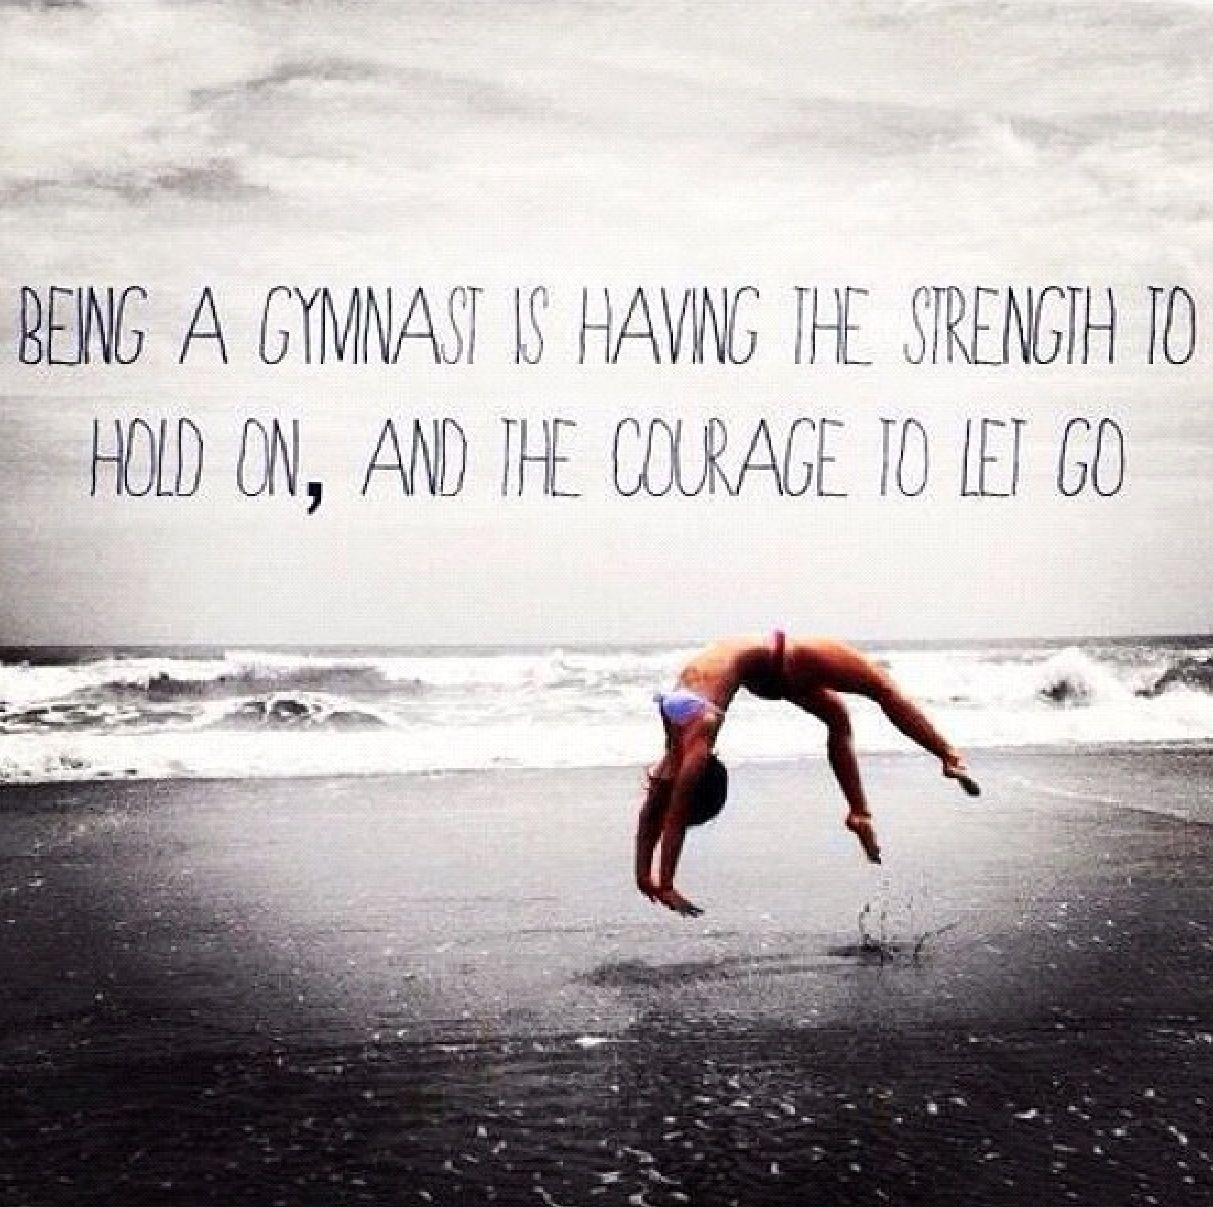 Being A Gymnast Is Having The Strength To Hold On And The